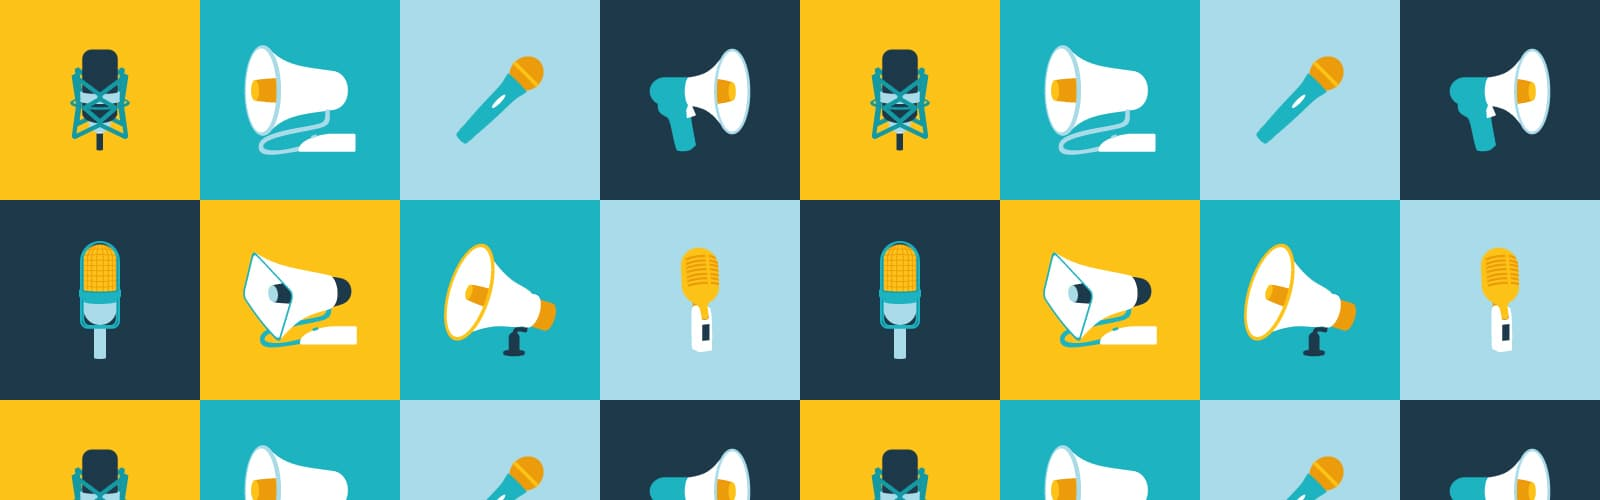 Header for the blog post 'Increase Brand Awareness Using SEO As A PR Tool' featuring microphones and megaphones.